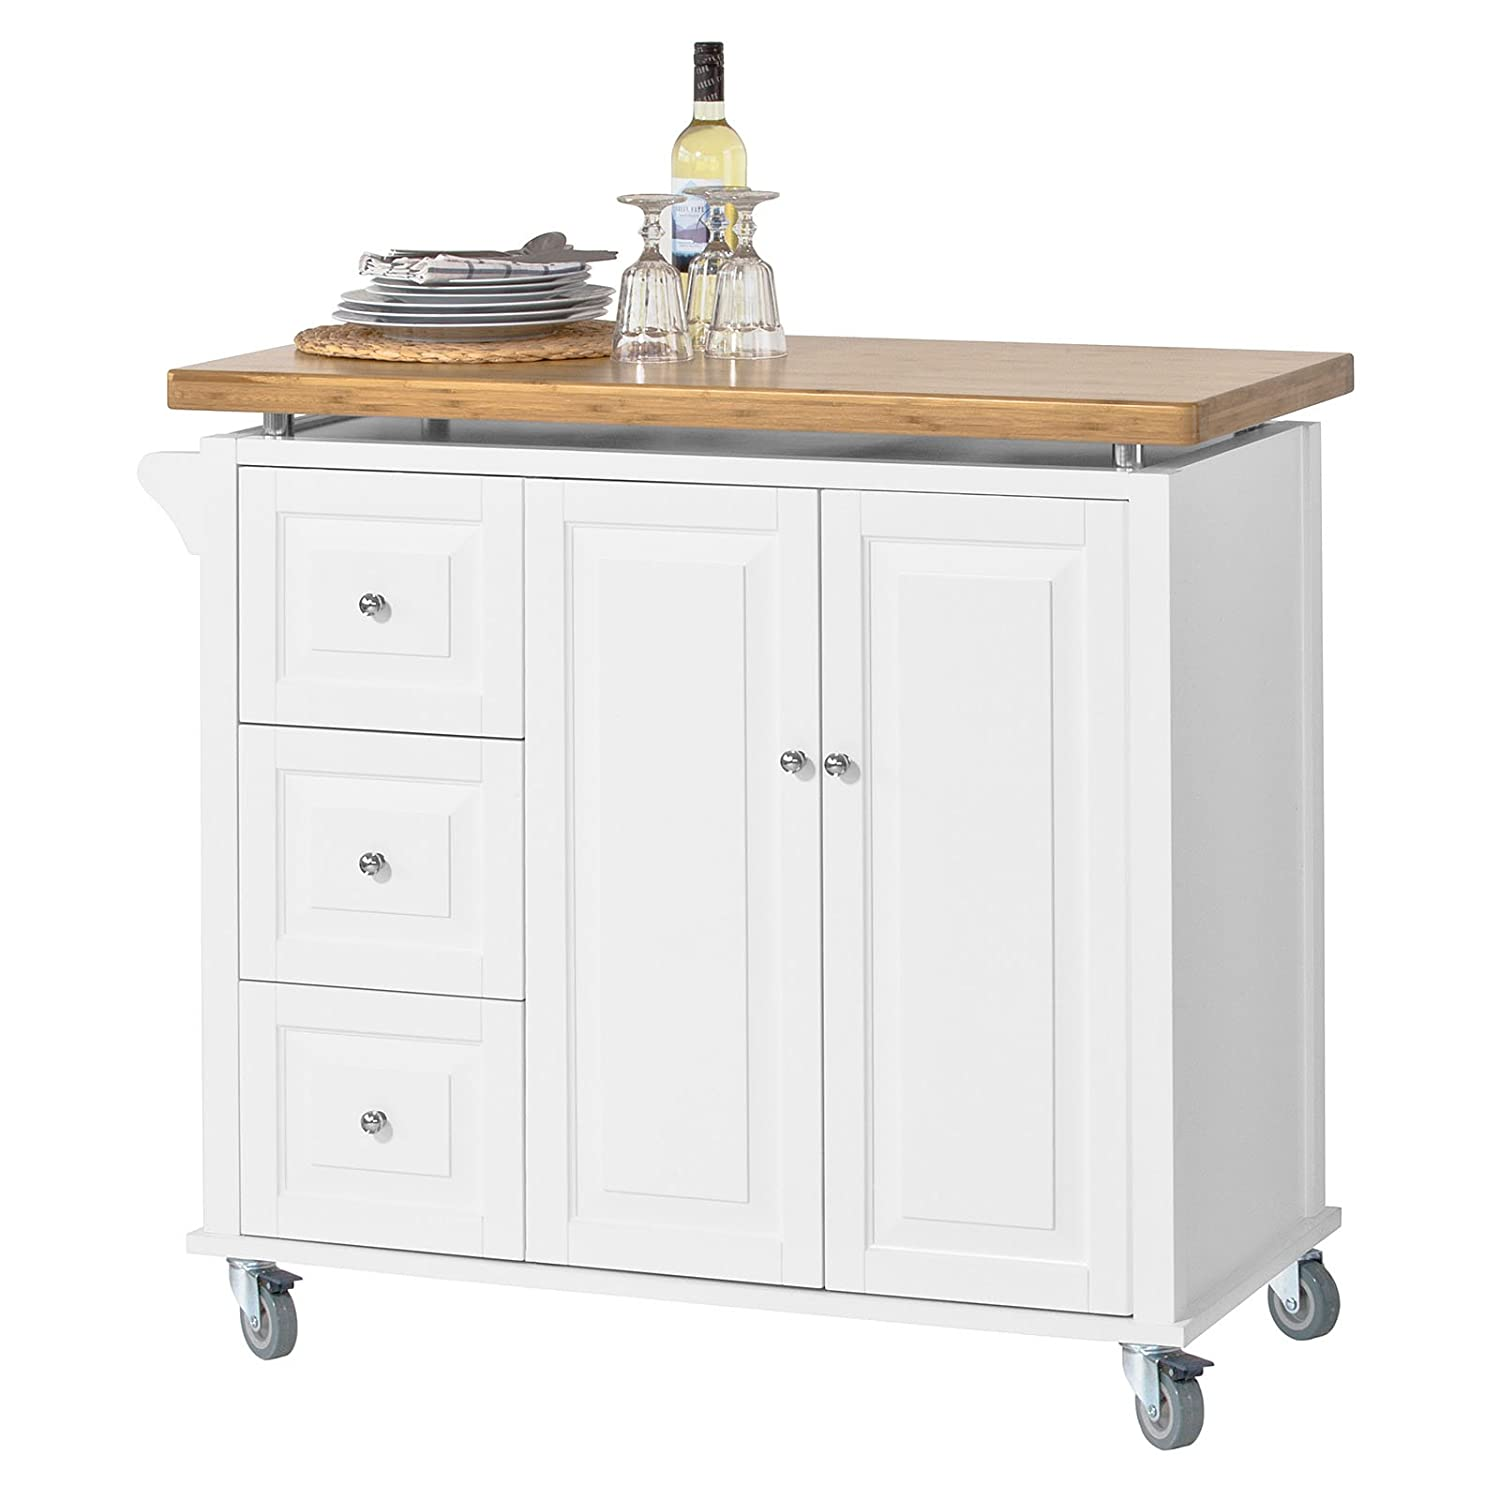 Sobuy fkw30 wn new luxury kitchen cart kitchen island kitchen cabinet with bamboo worktop 3 drawers and 1 cupboard amazon co uk kitchen home